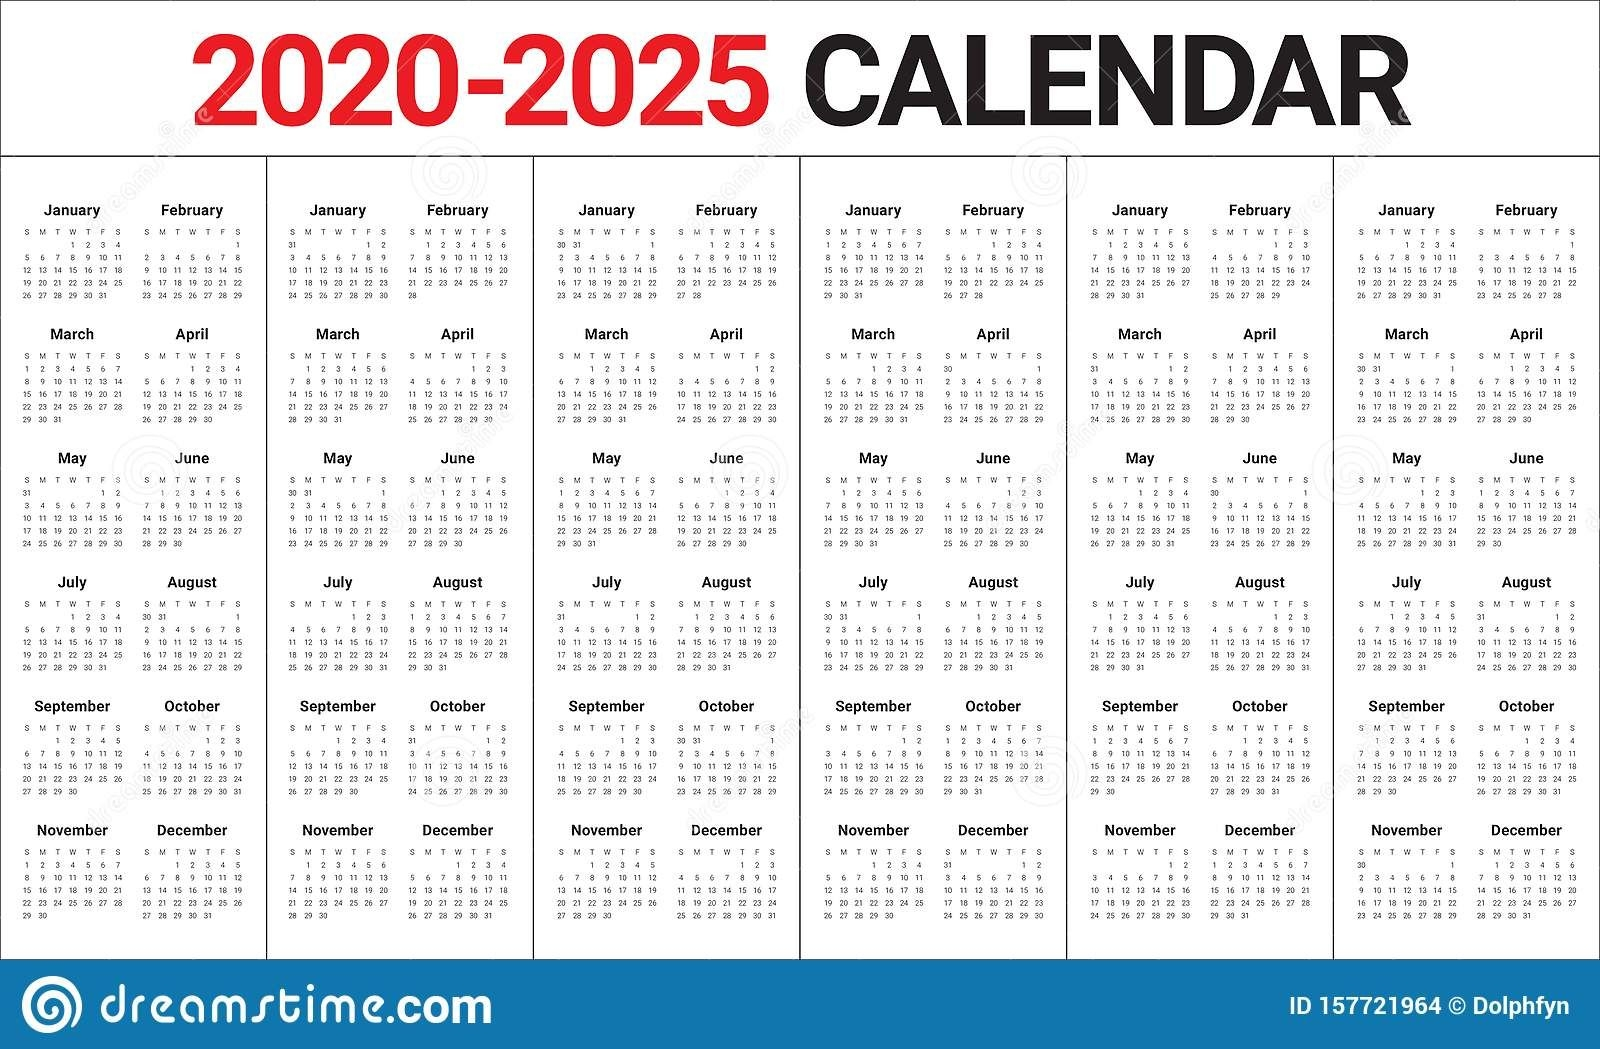 Year 2020 2021 2022 2023 2024 2025 Calendar Vector Design